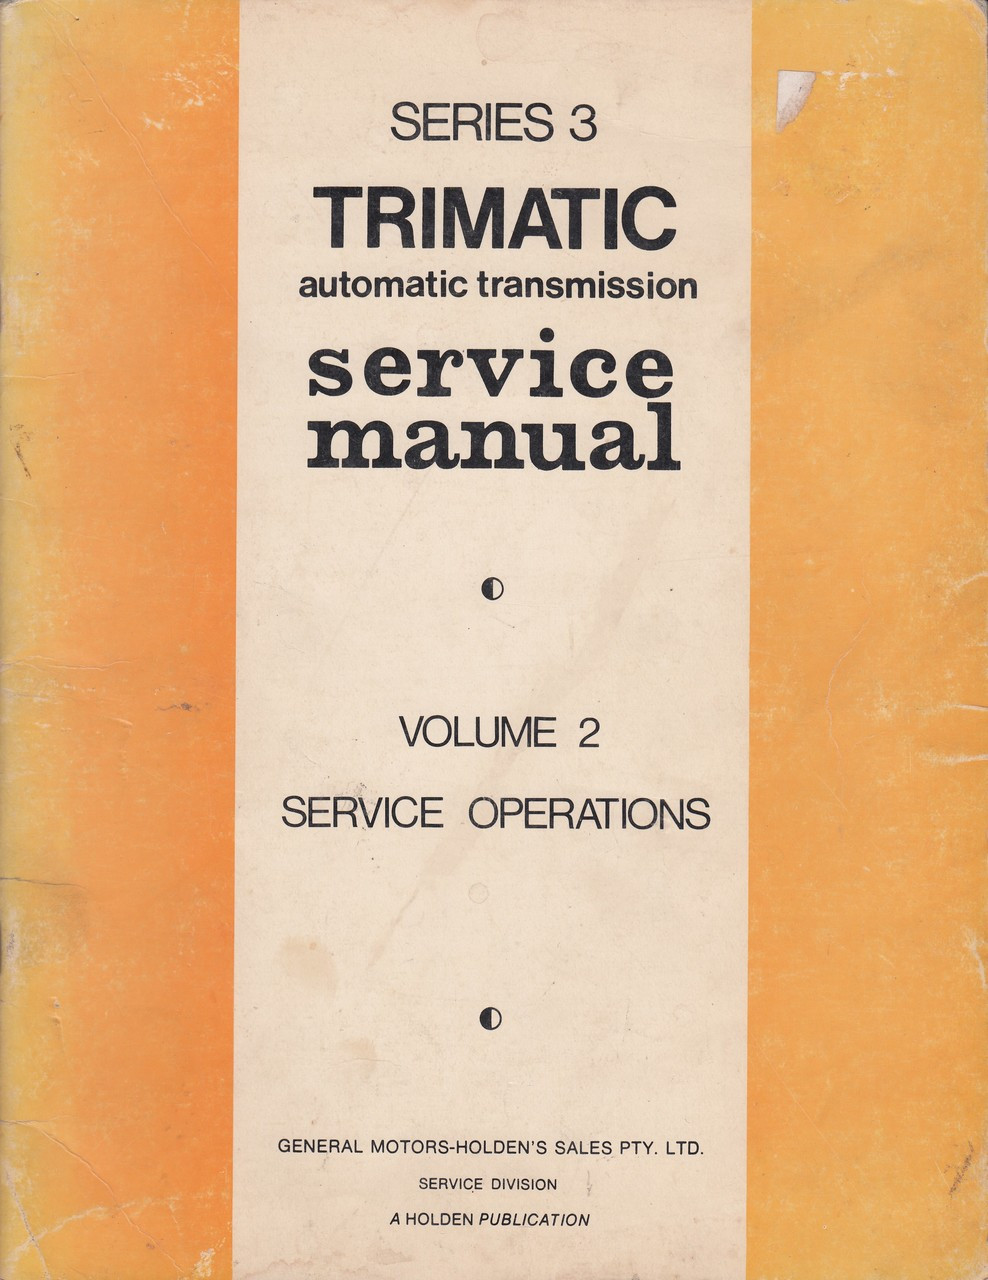 small resolution of holden series 3 trimatic automatic transmission service manual vol 2 service operations